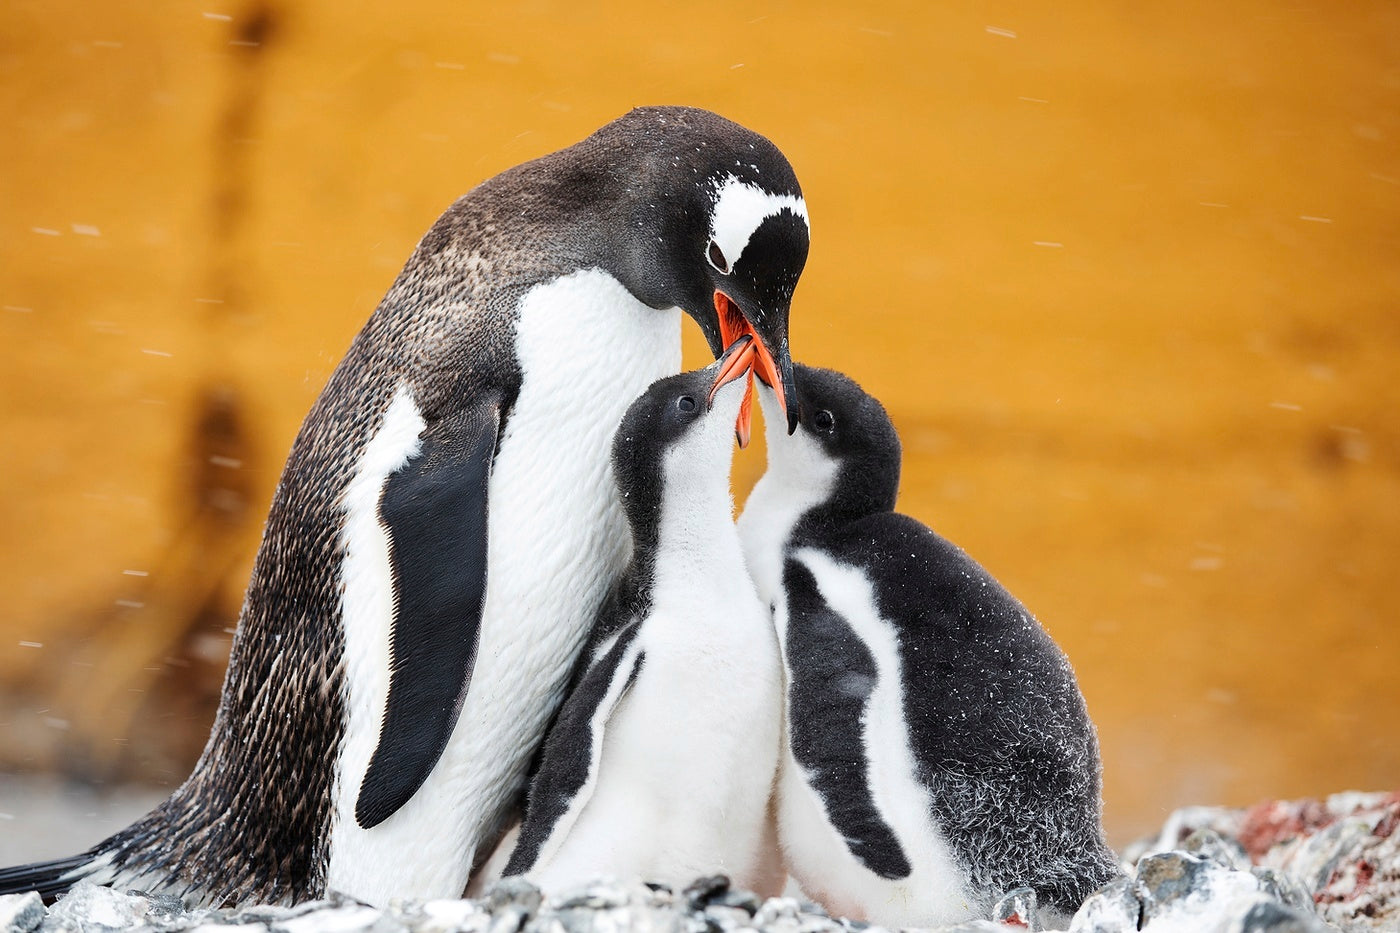 A penguin parent feeding its two chicks after returning from days at sea